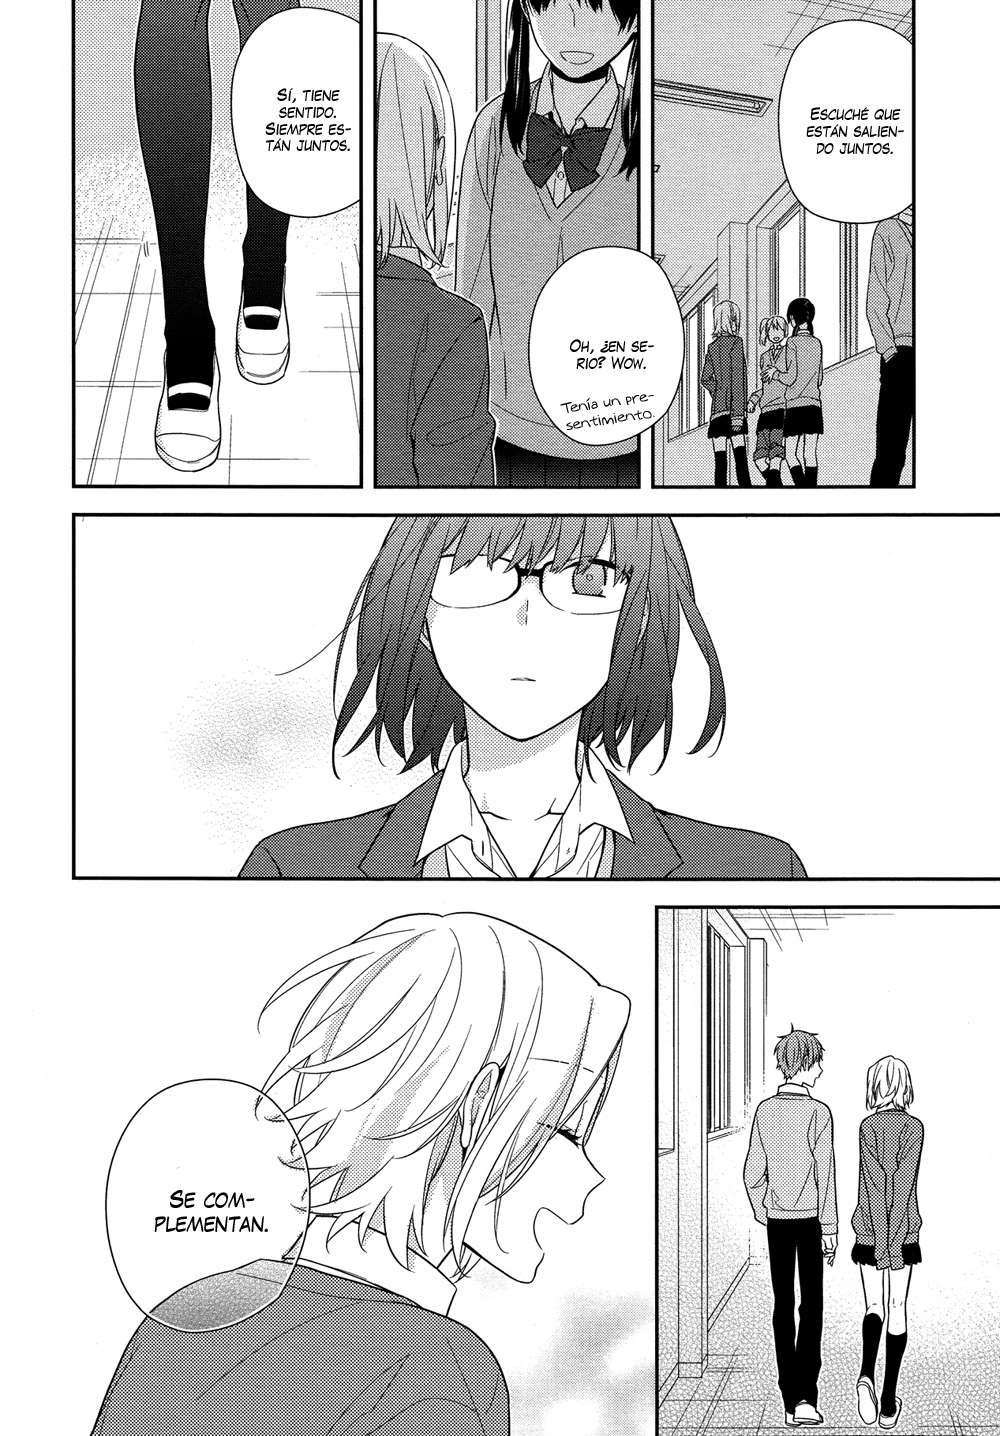 http://c5.ninemanga.com/es_manga/19/1043/434711/63cb524a9f51b7858733e1108bf556fa.jpg Page 7